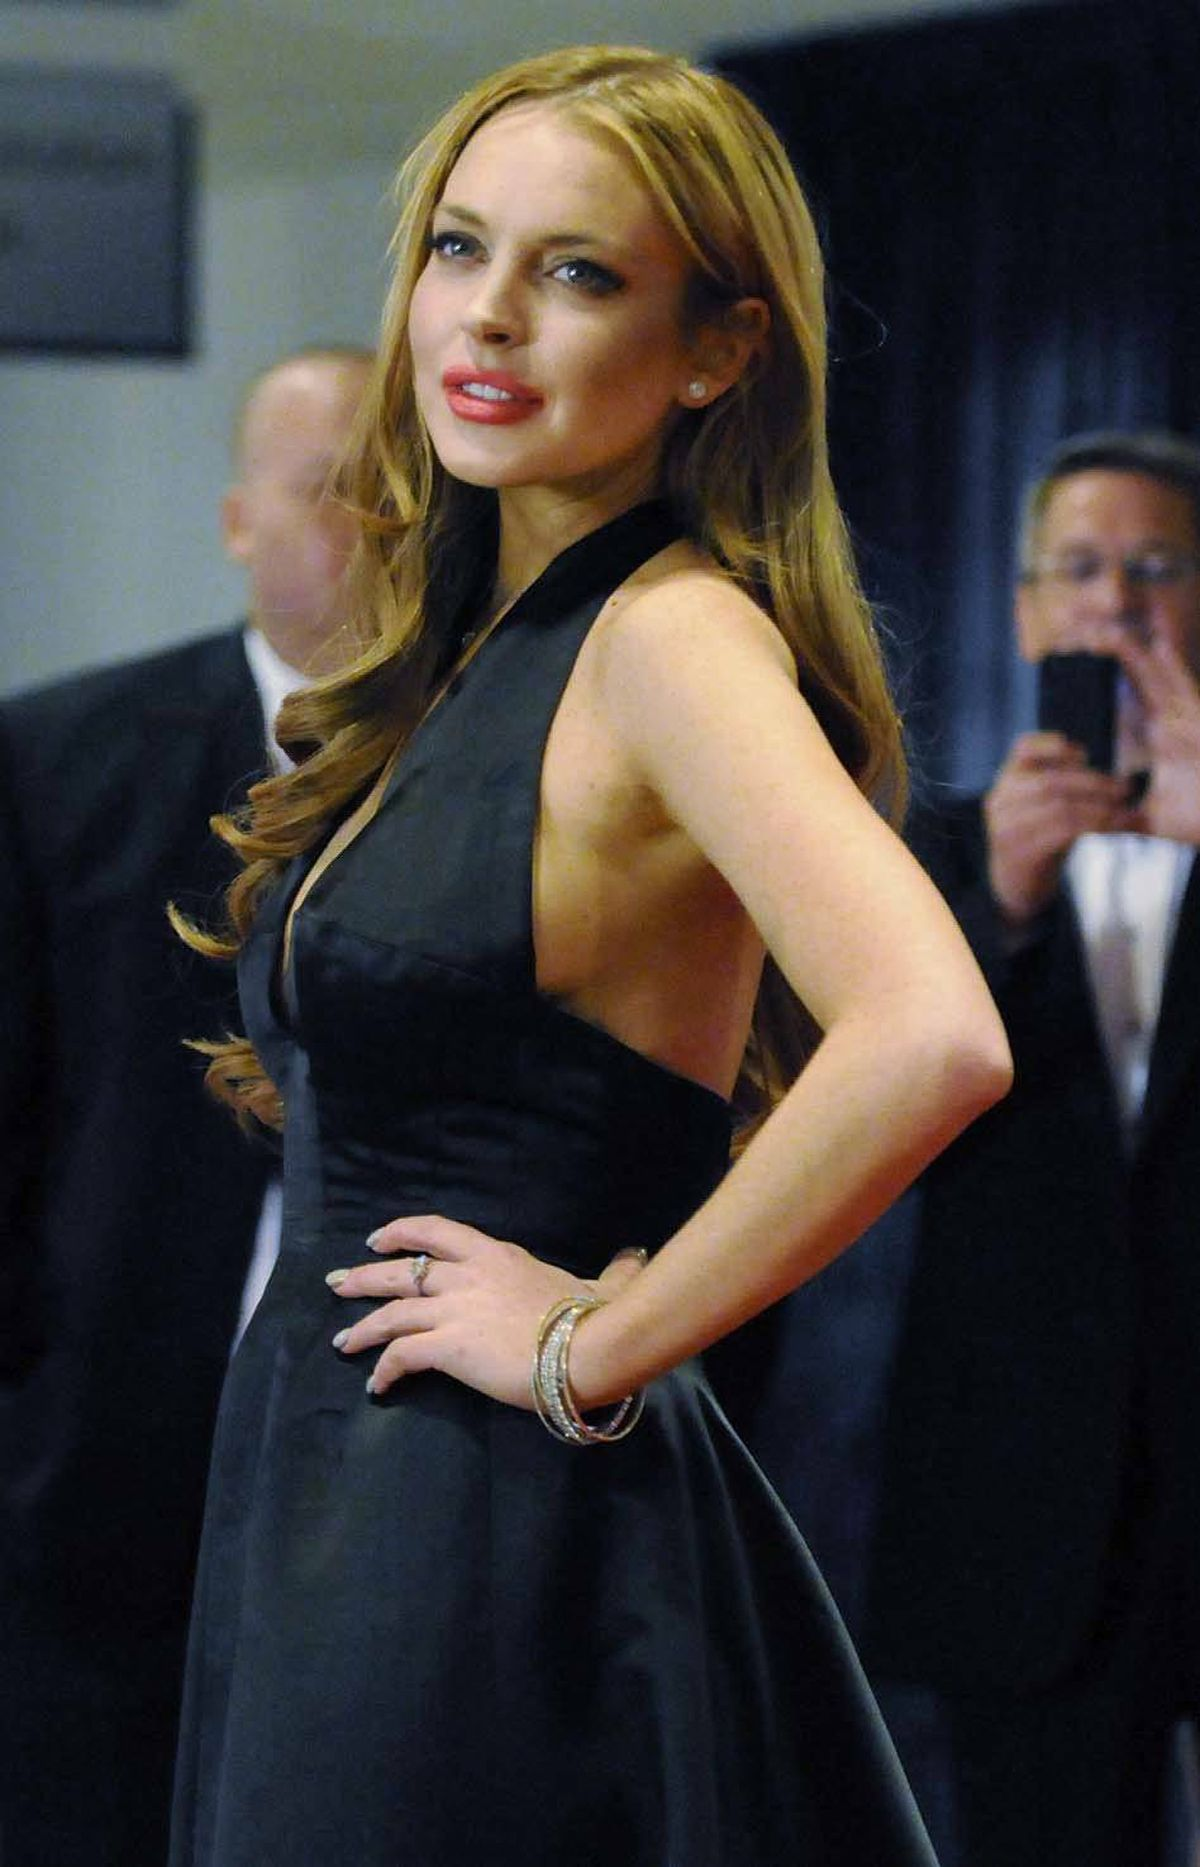 Celebrity morgue janitor Lindsay Lohan also made perfect sense on the guest list for an event put on by a press corps dedicated to keeping the excesses of the elite in check. Where else would she be?